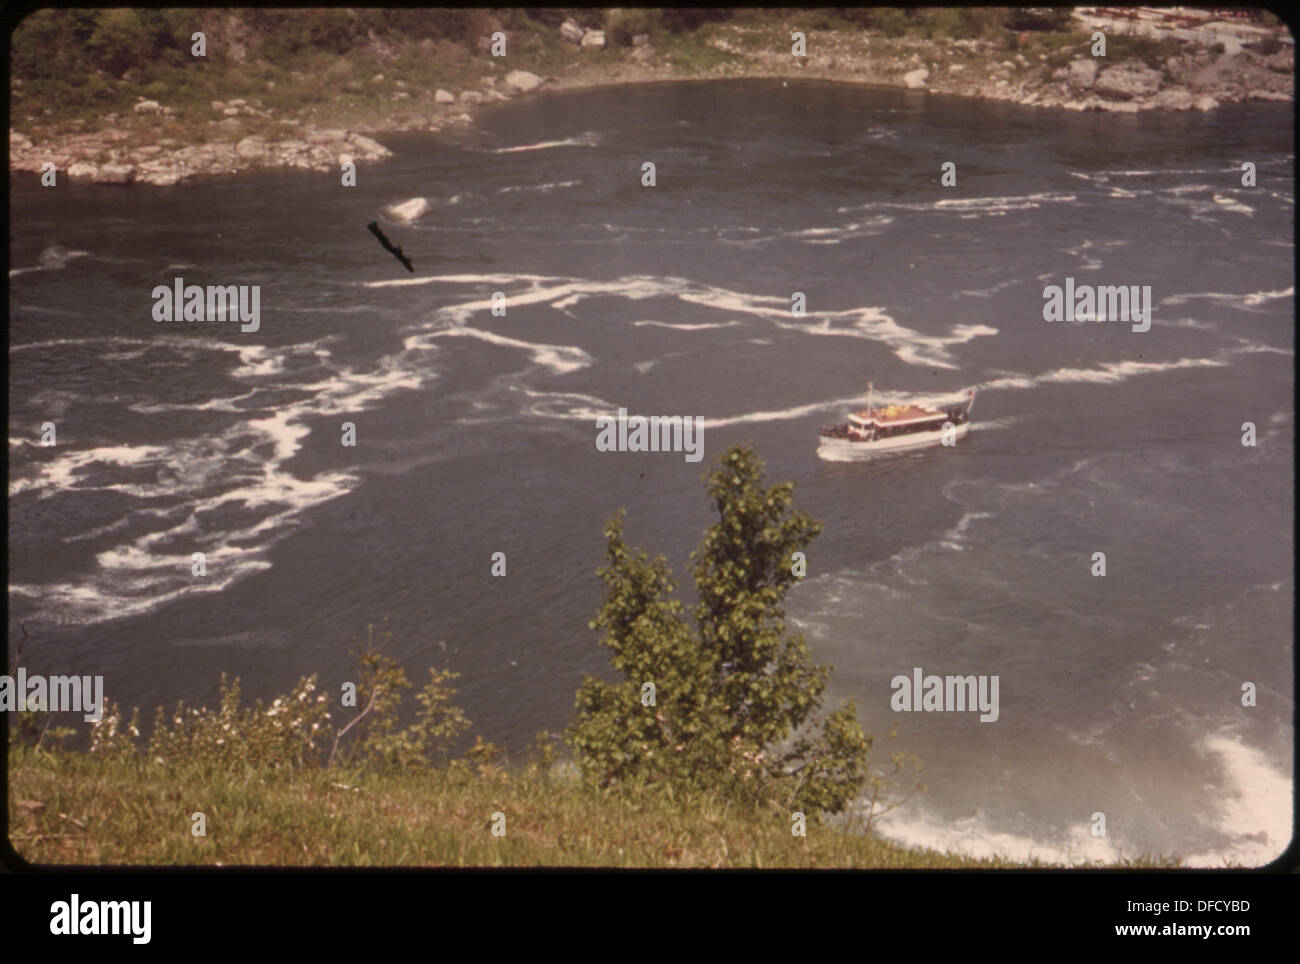 DIESEL-POWERED MAID-OF-THE-MIST SIGHTSEEING BOAT PLIES THE NIAGARA RIVER JUST BELOW THE FALLS. FOAM PATTERN... 549532 - Stock Image